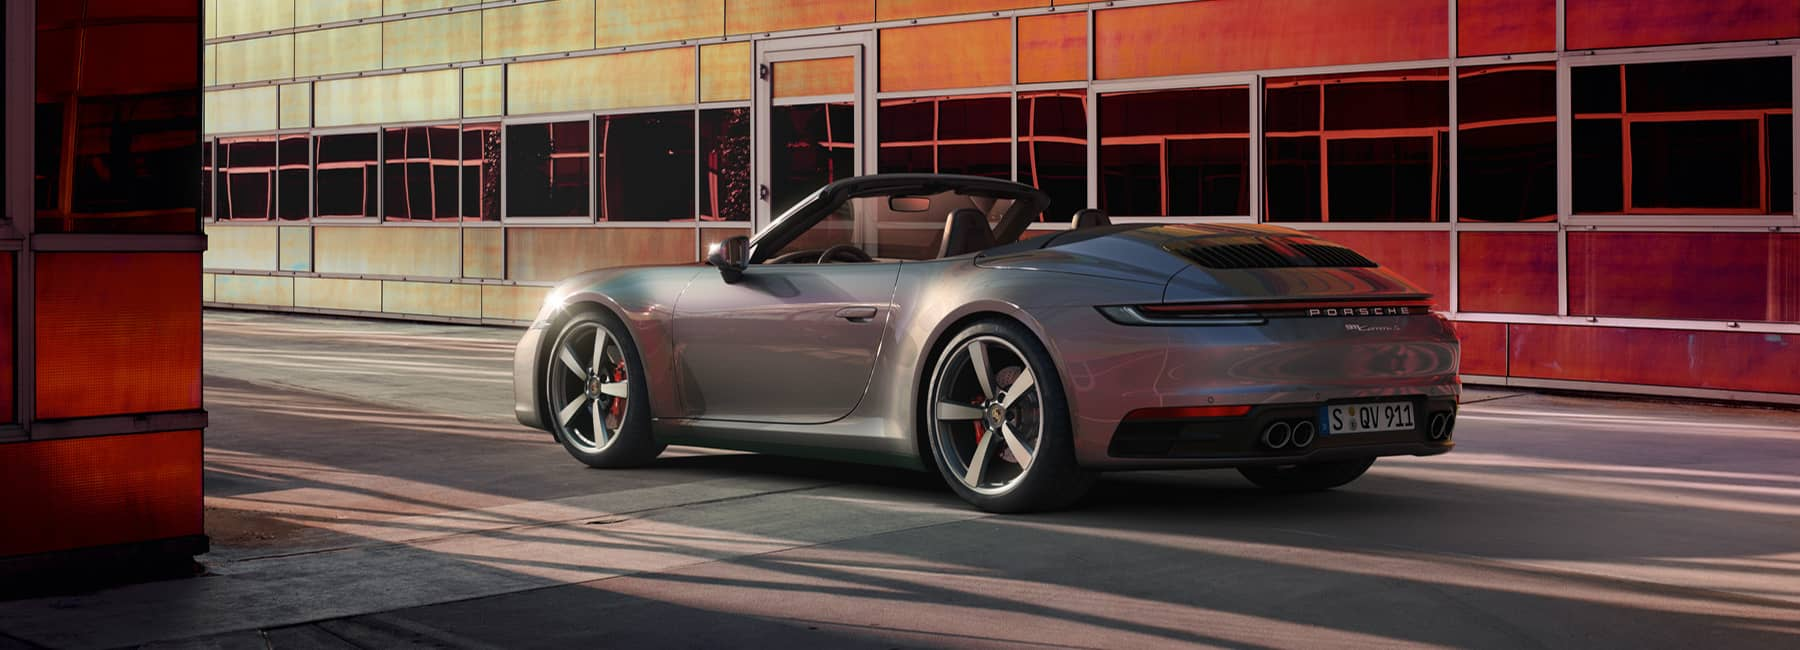 A grey Porsche convertible parked in front of a warehouse.